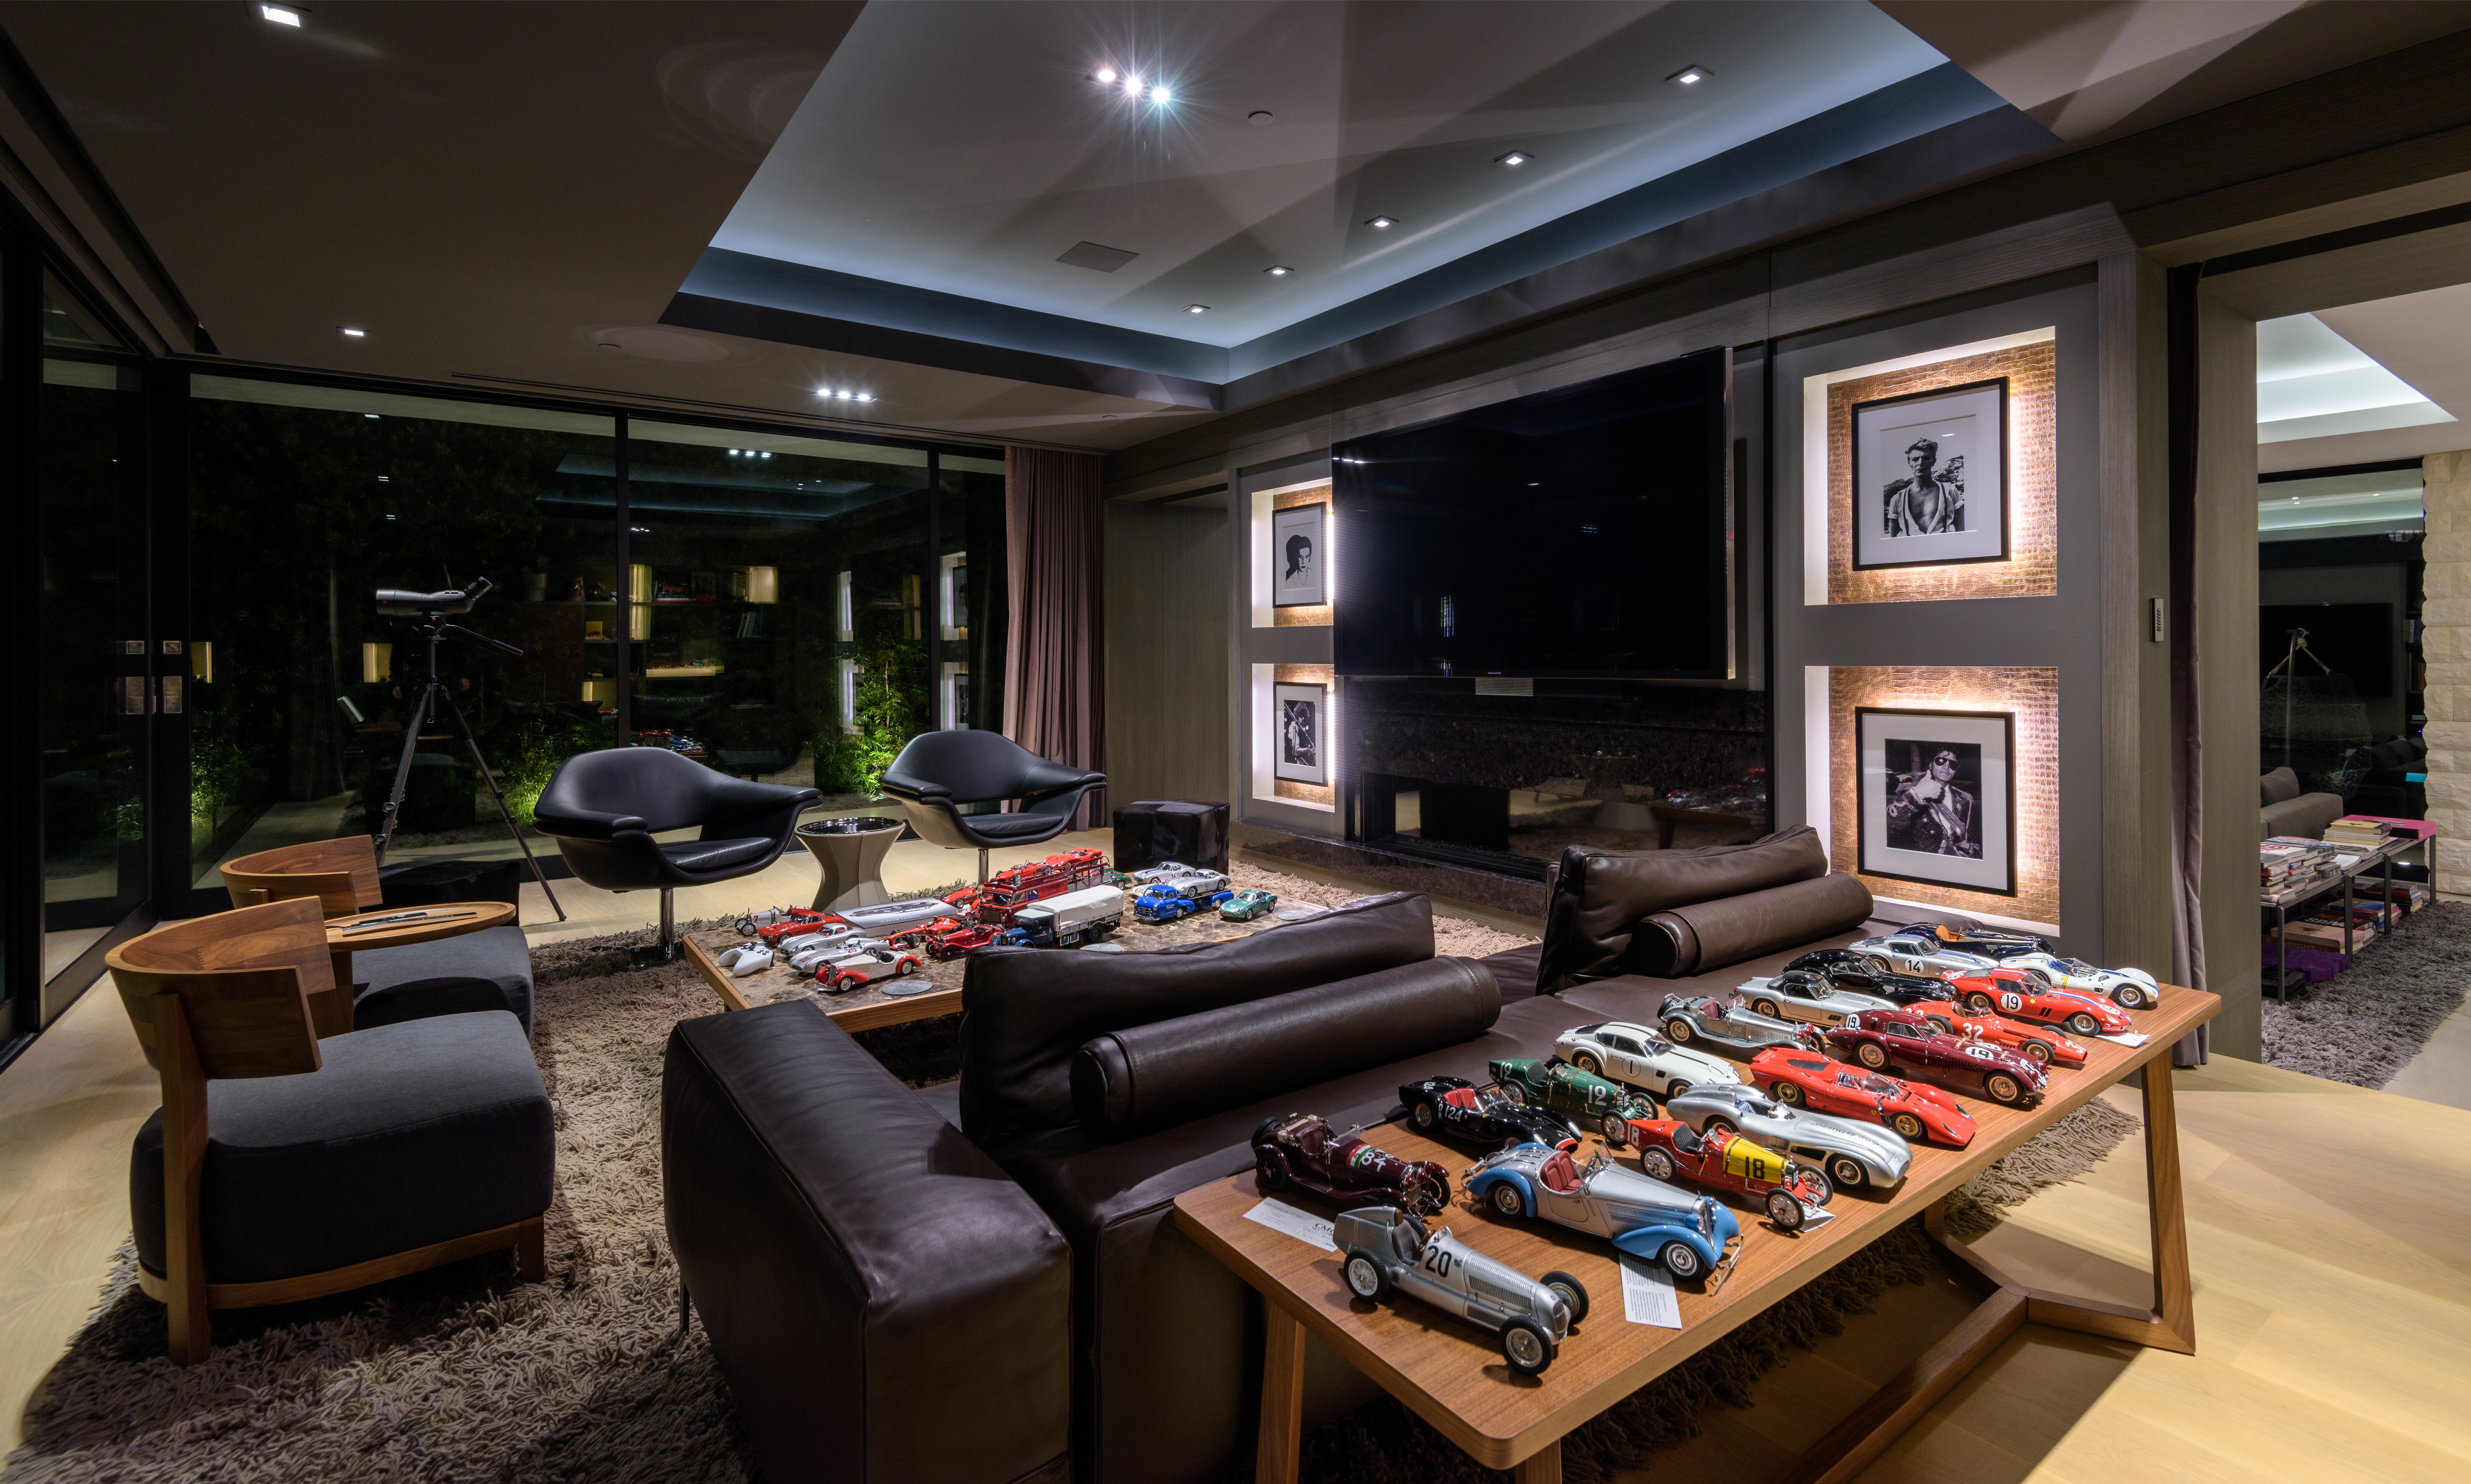 Russell Weiner's Hollywood Hills home photo